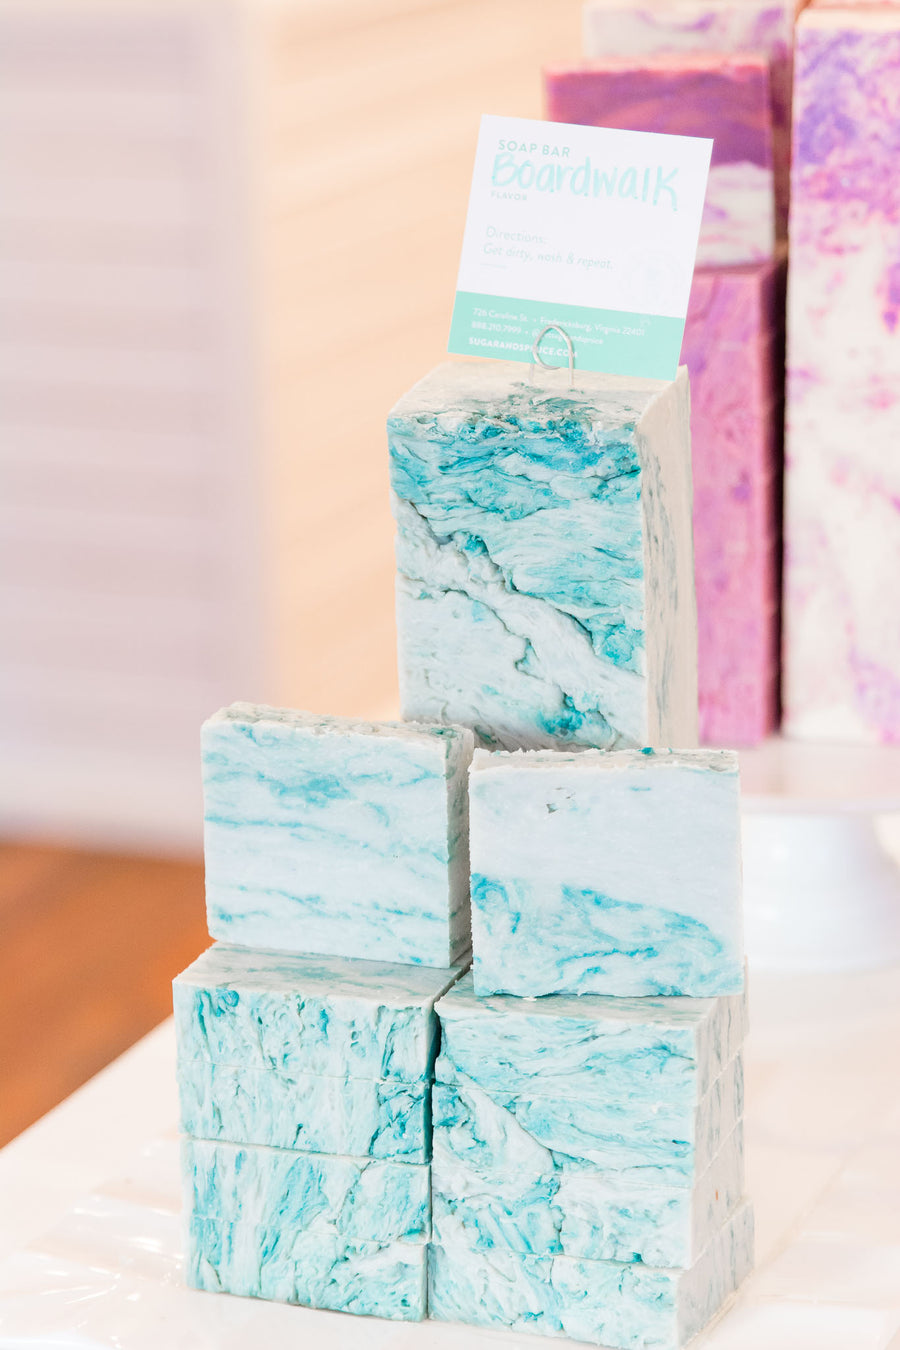 Boardwalk Soap Bar